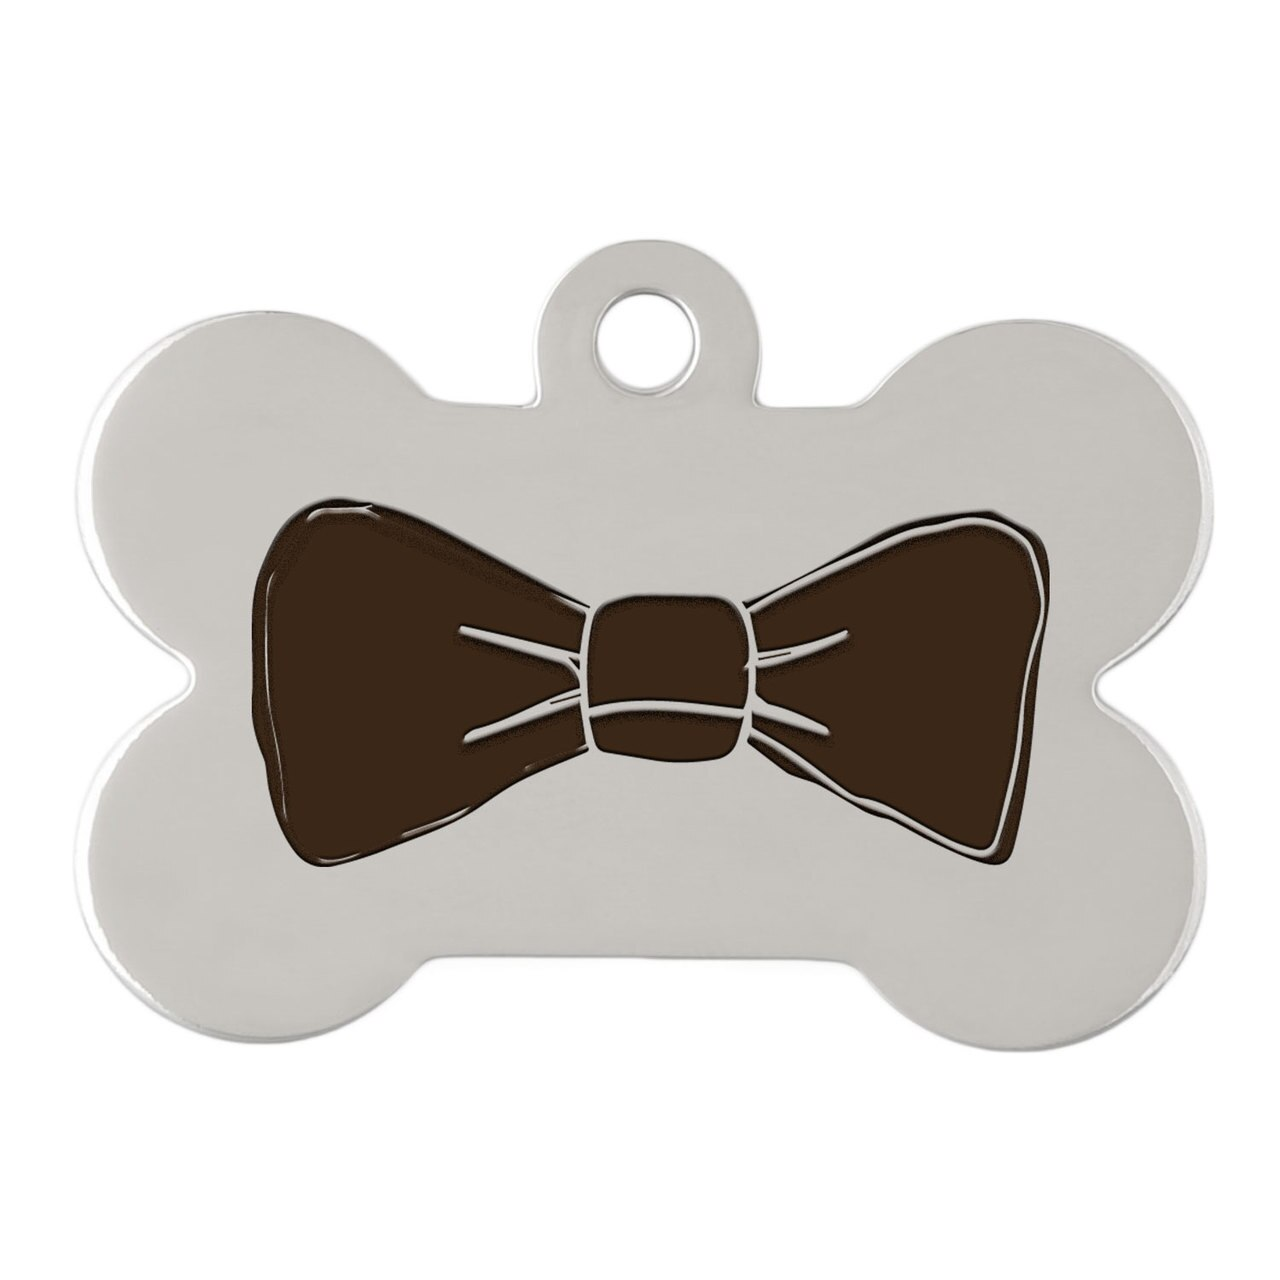 dogIDs Signature Fancy Suit and Tie Dog ID Tags Bow Tie Silver